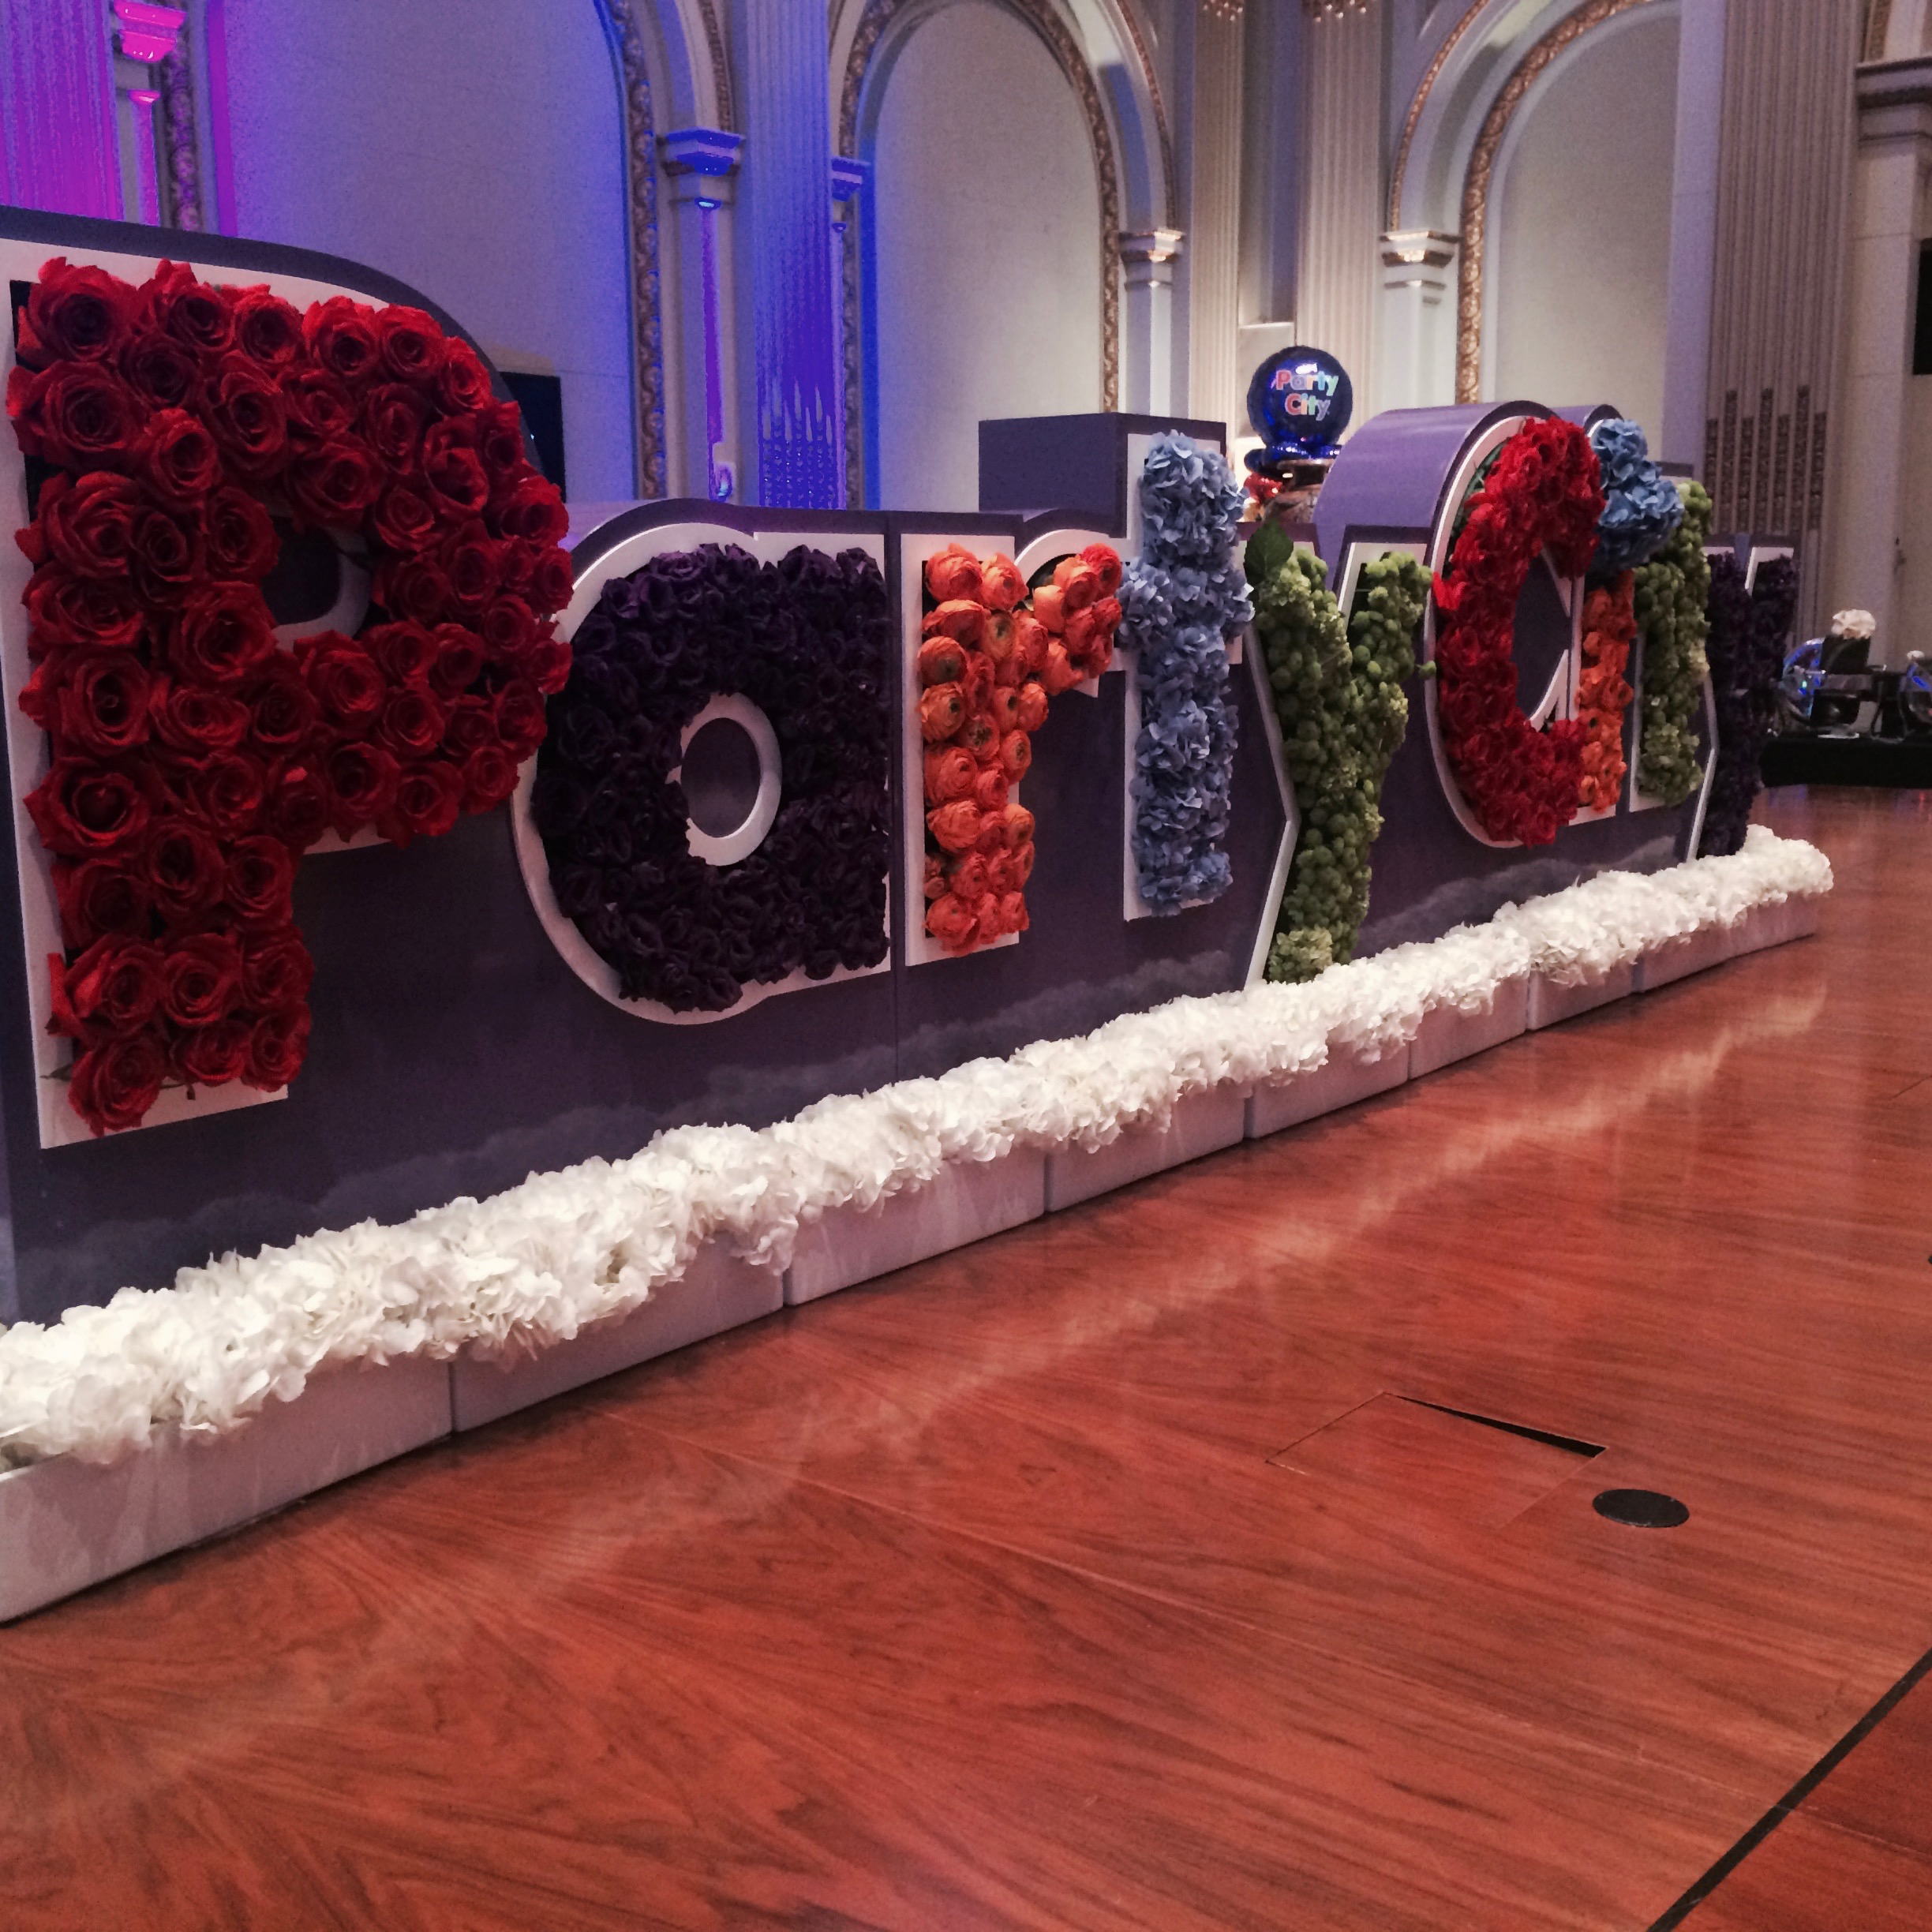 Party City IPO event at NYSE Boardroom